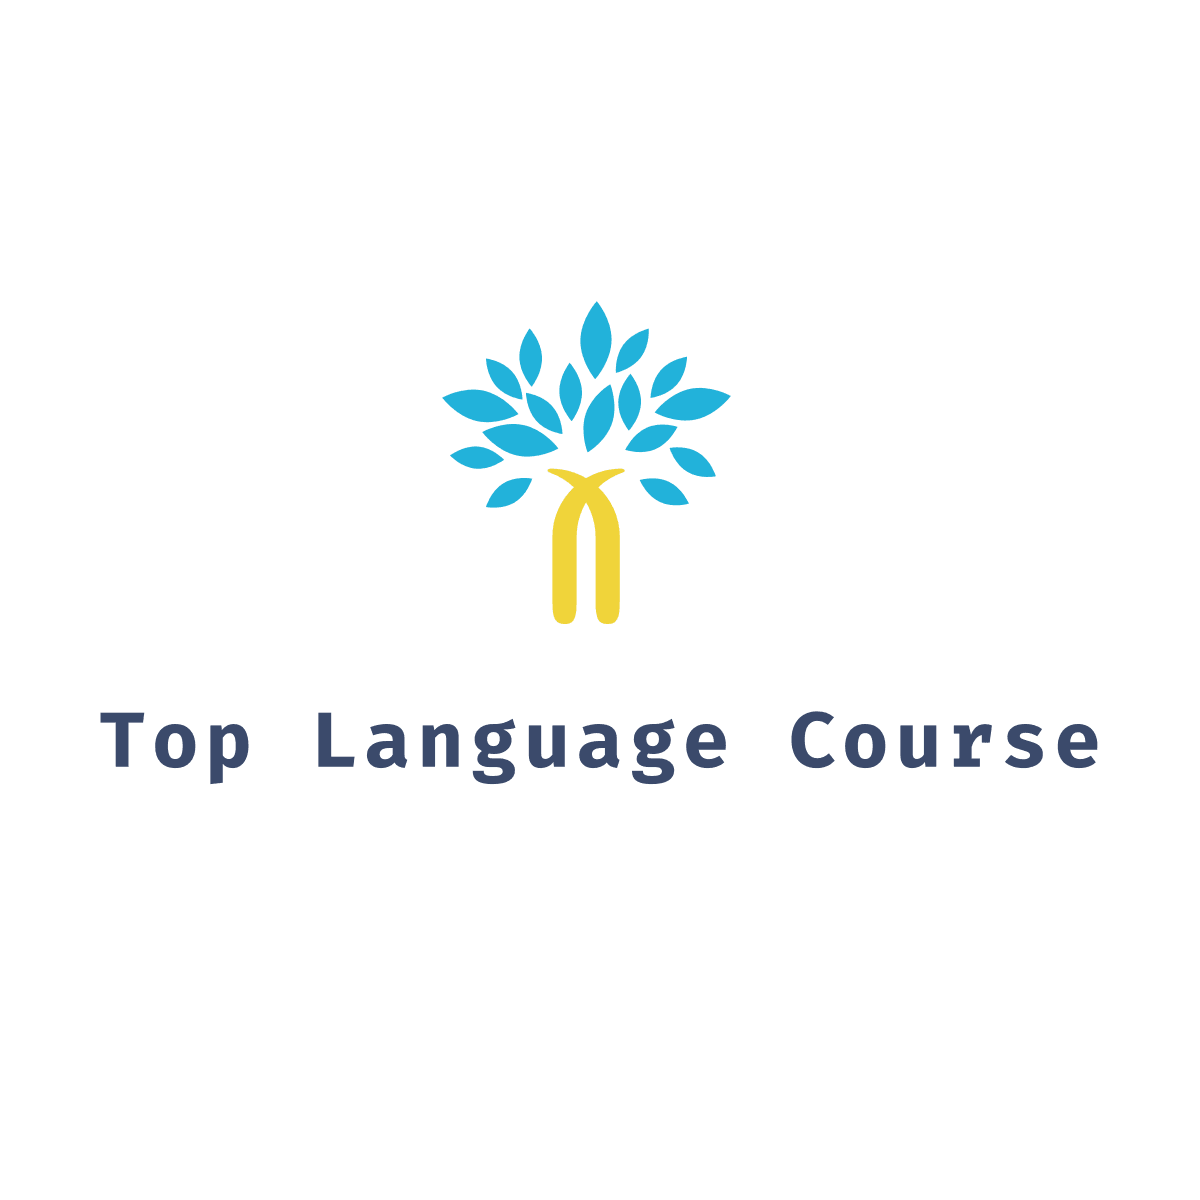 Top Language Course